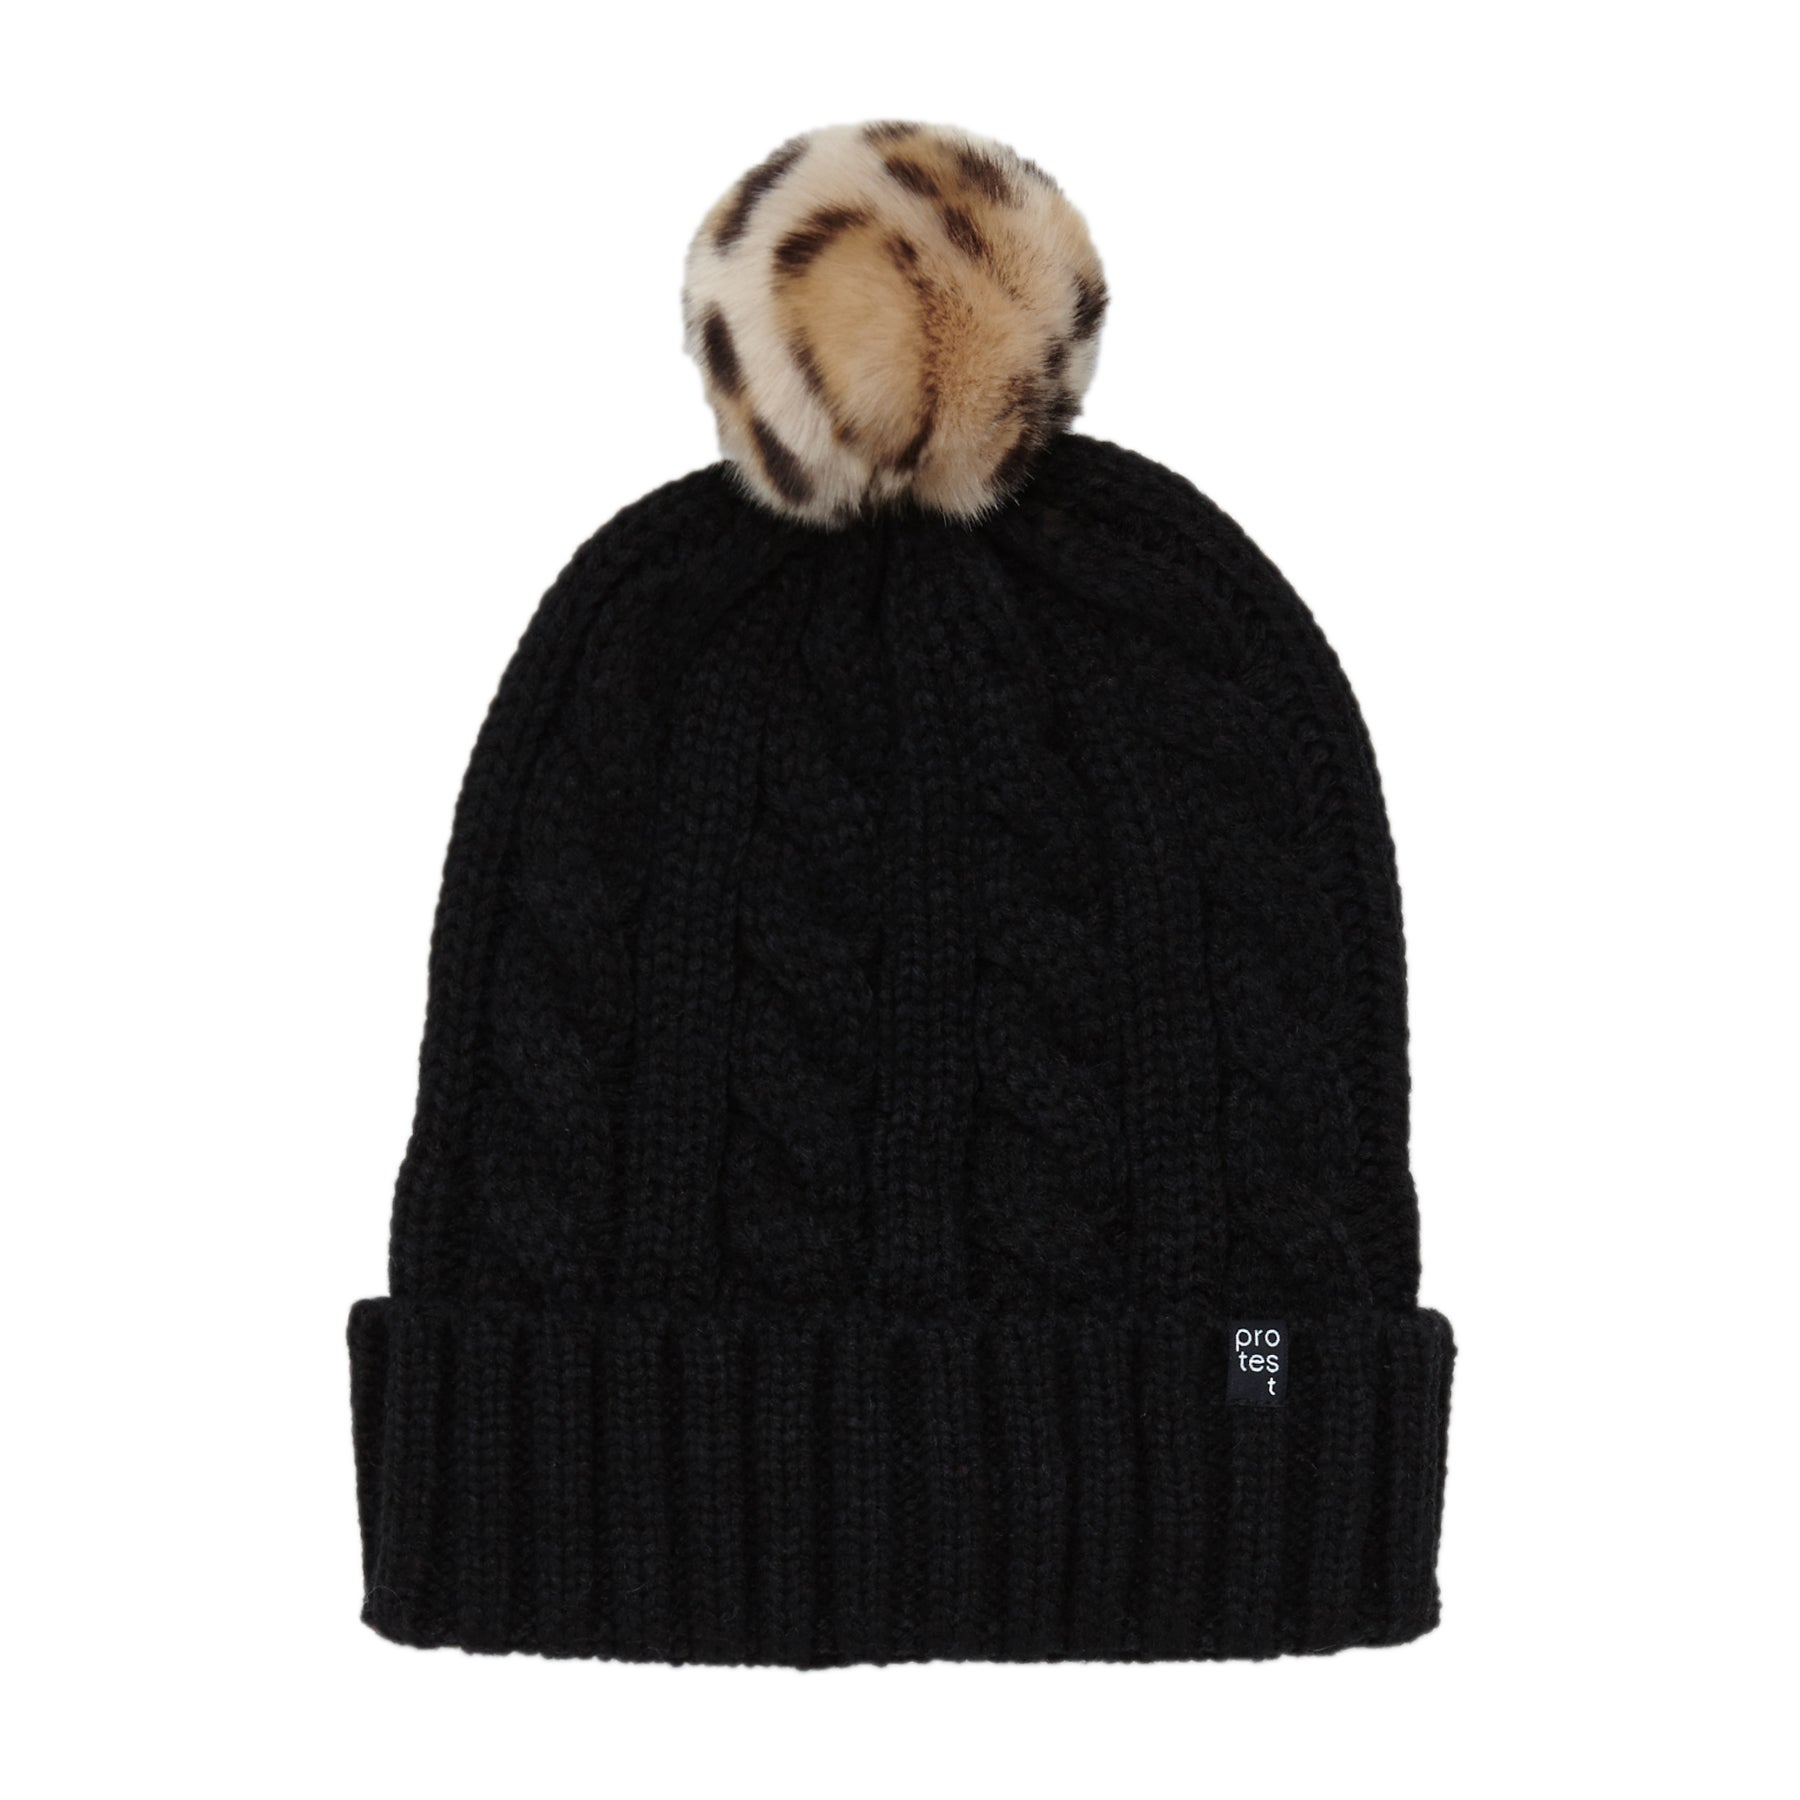 Protest Arges 18 Ladies Beanie